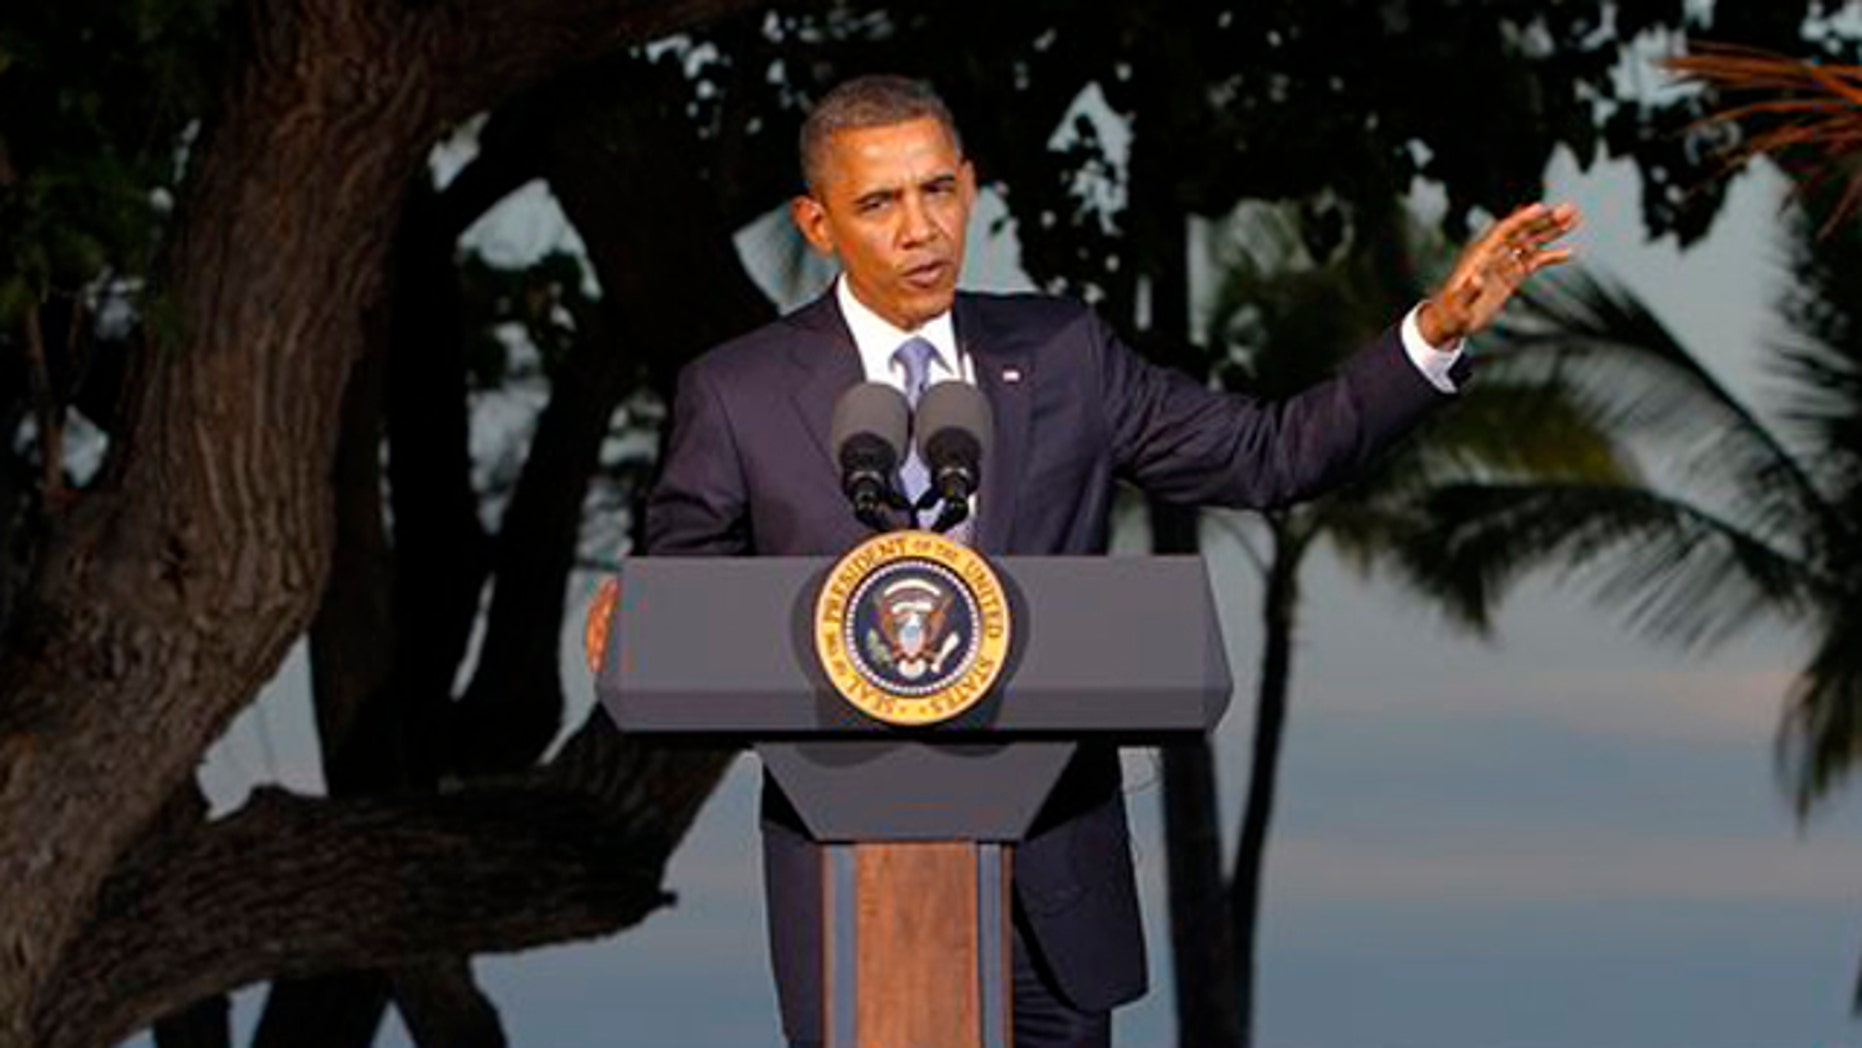 Nov. 13, 2011: President Obama speaks during his closing press conference at the Asia-Pacific Economic Cooperation summit near Honolulu, Hawaii.